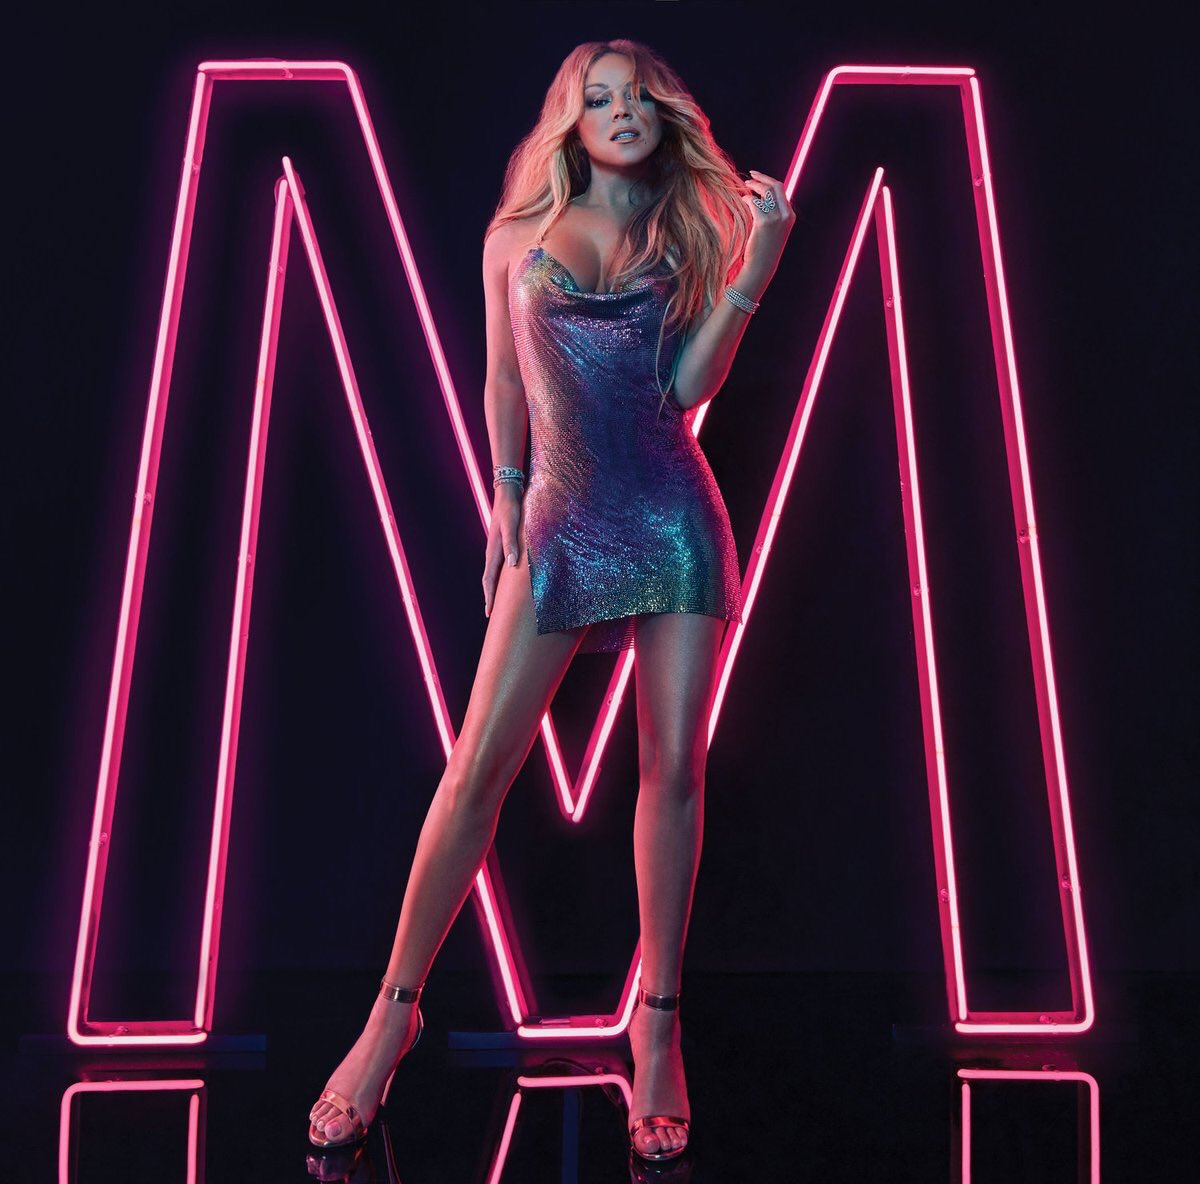 Best album of 2018 @MariahCarey caution @RecordingAcad #Mimi #Grammys2018 <br>http://pic.twitter.com/K237oqRXhu